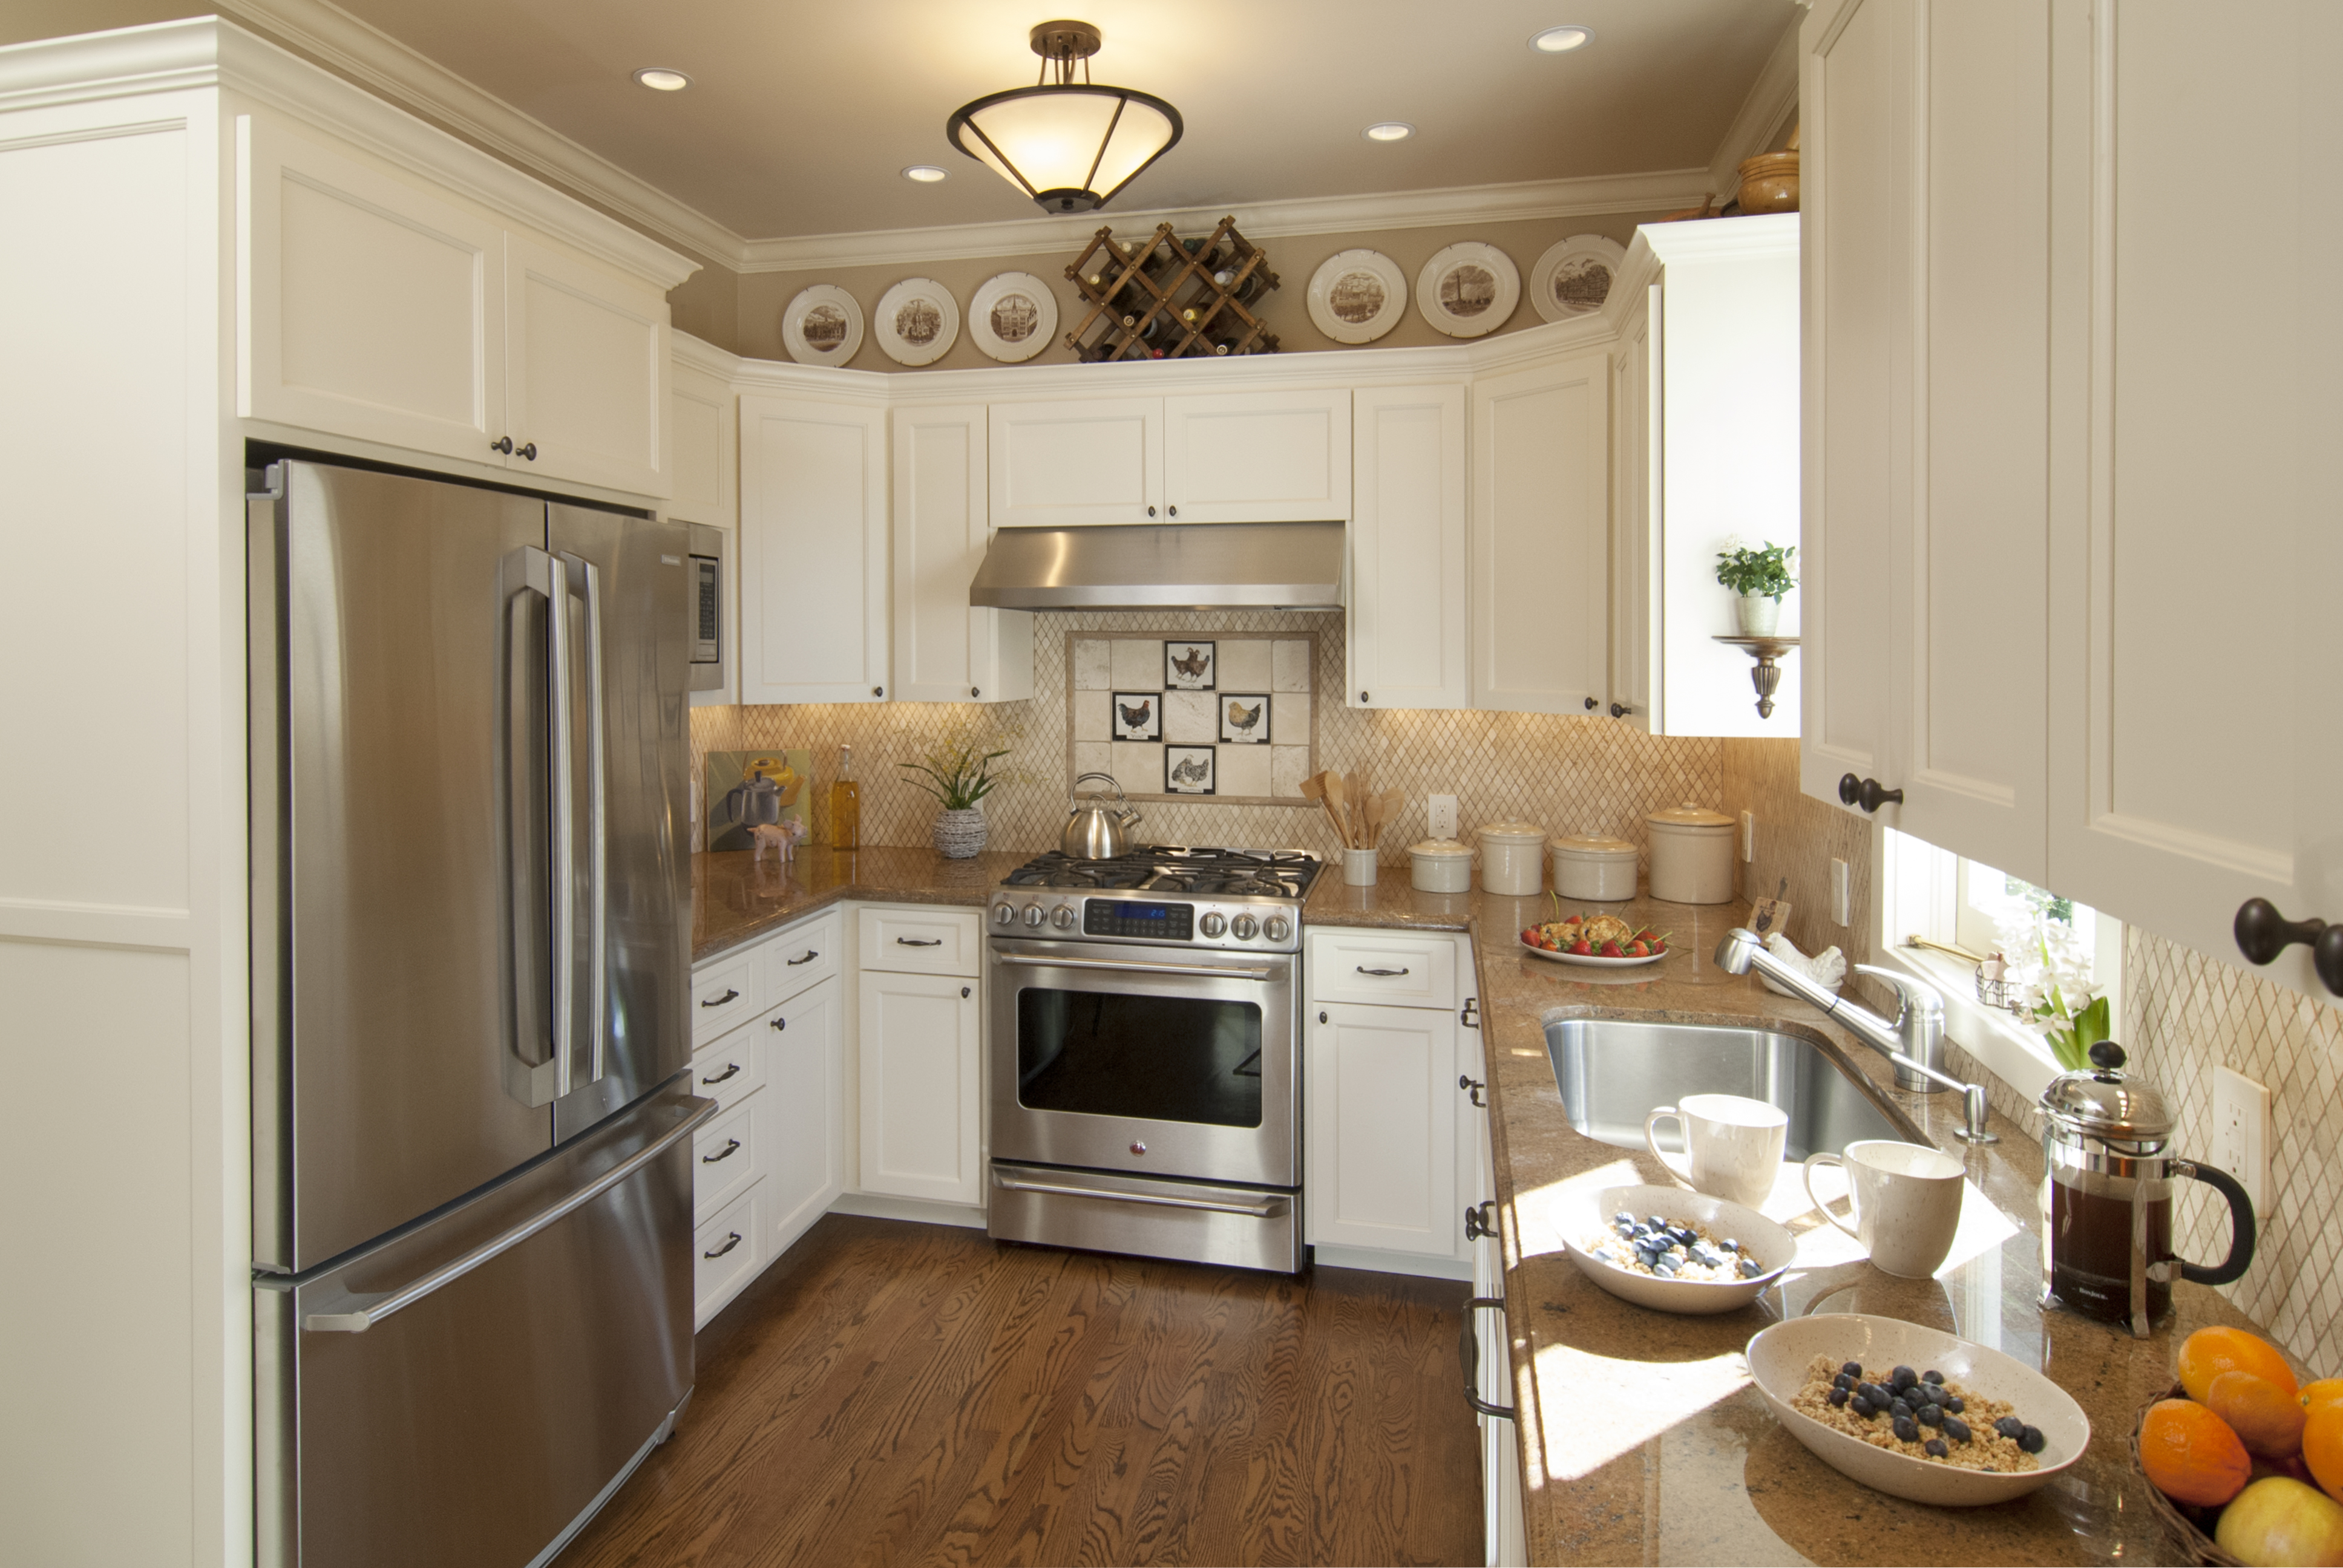 Transitional Off White Kitchen With Stainless Steel Appliances And Oil Rubbed Bronze Hardware